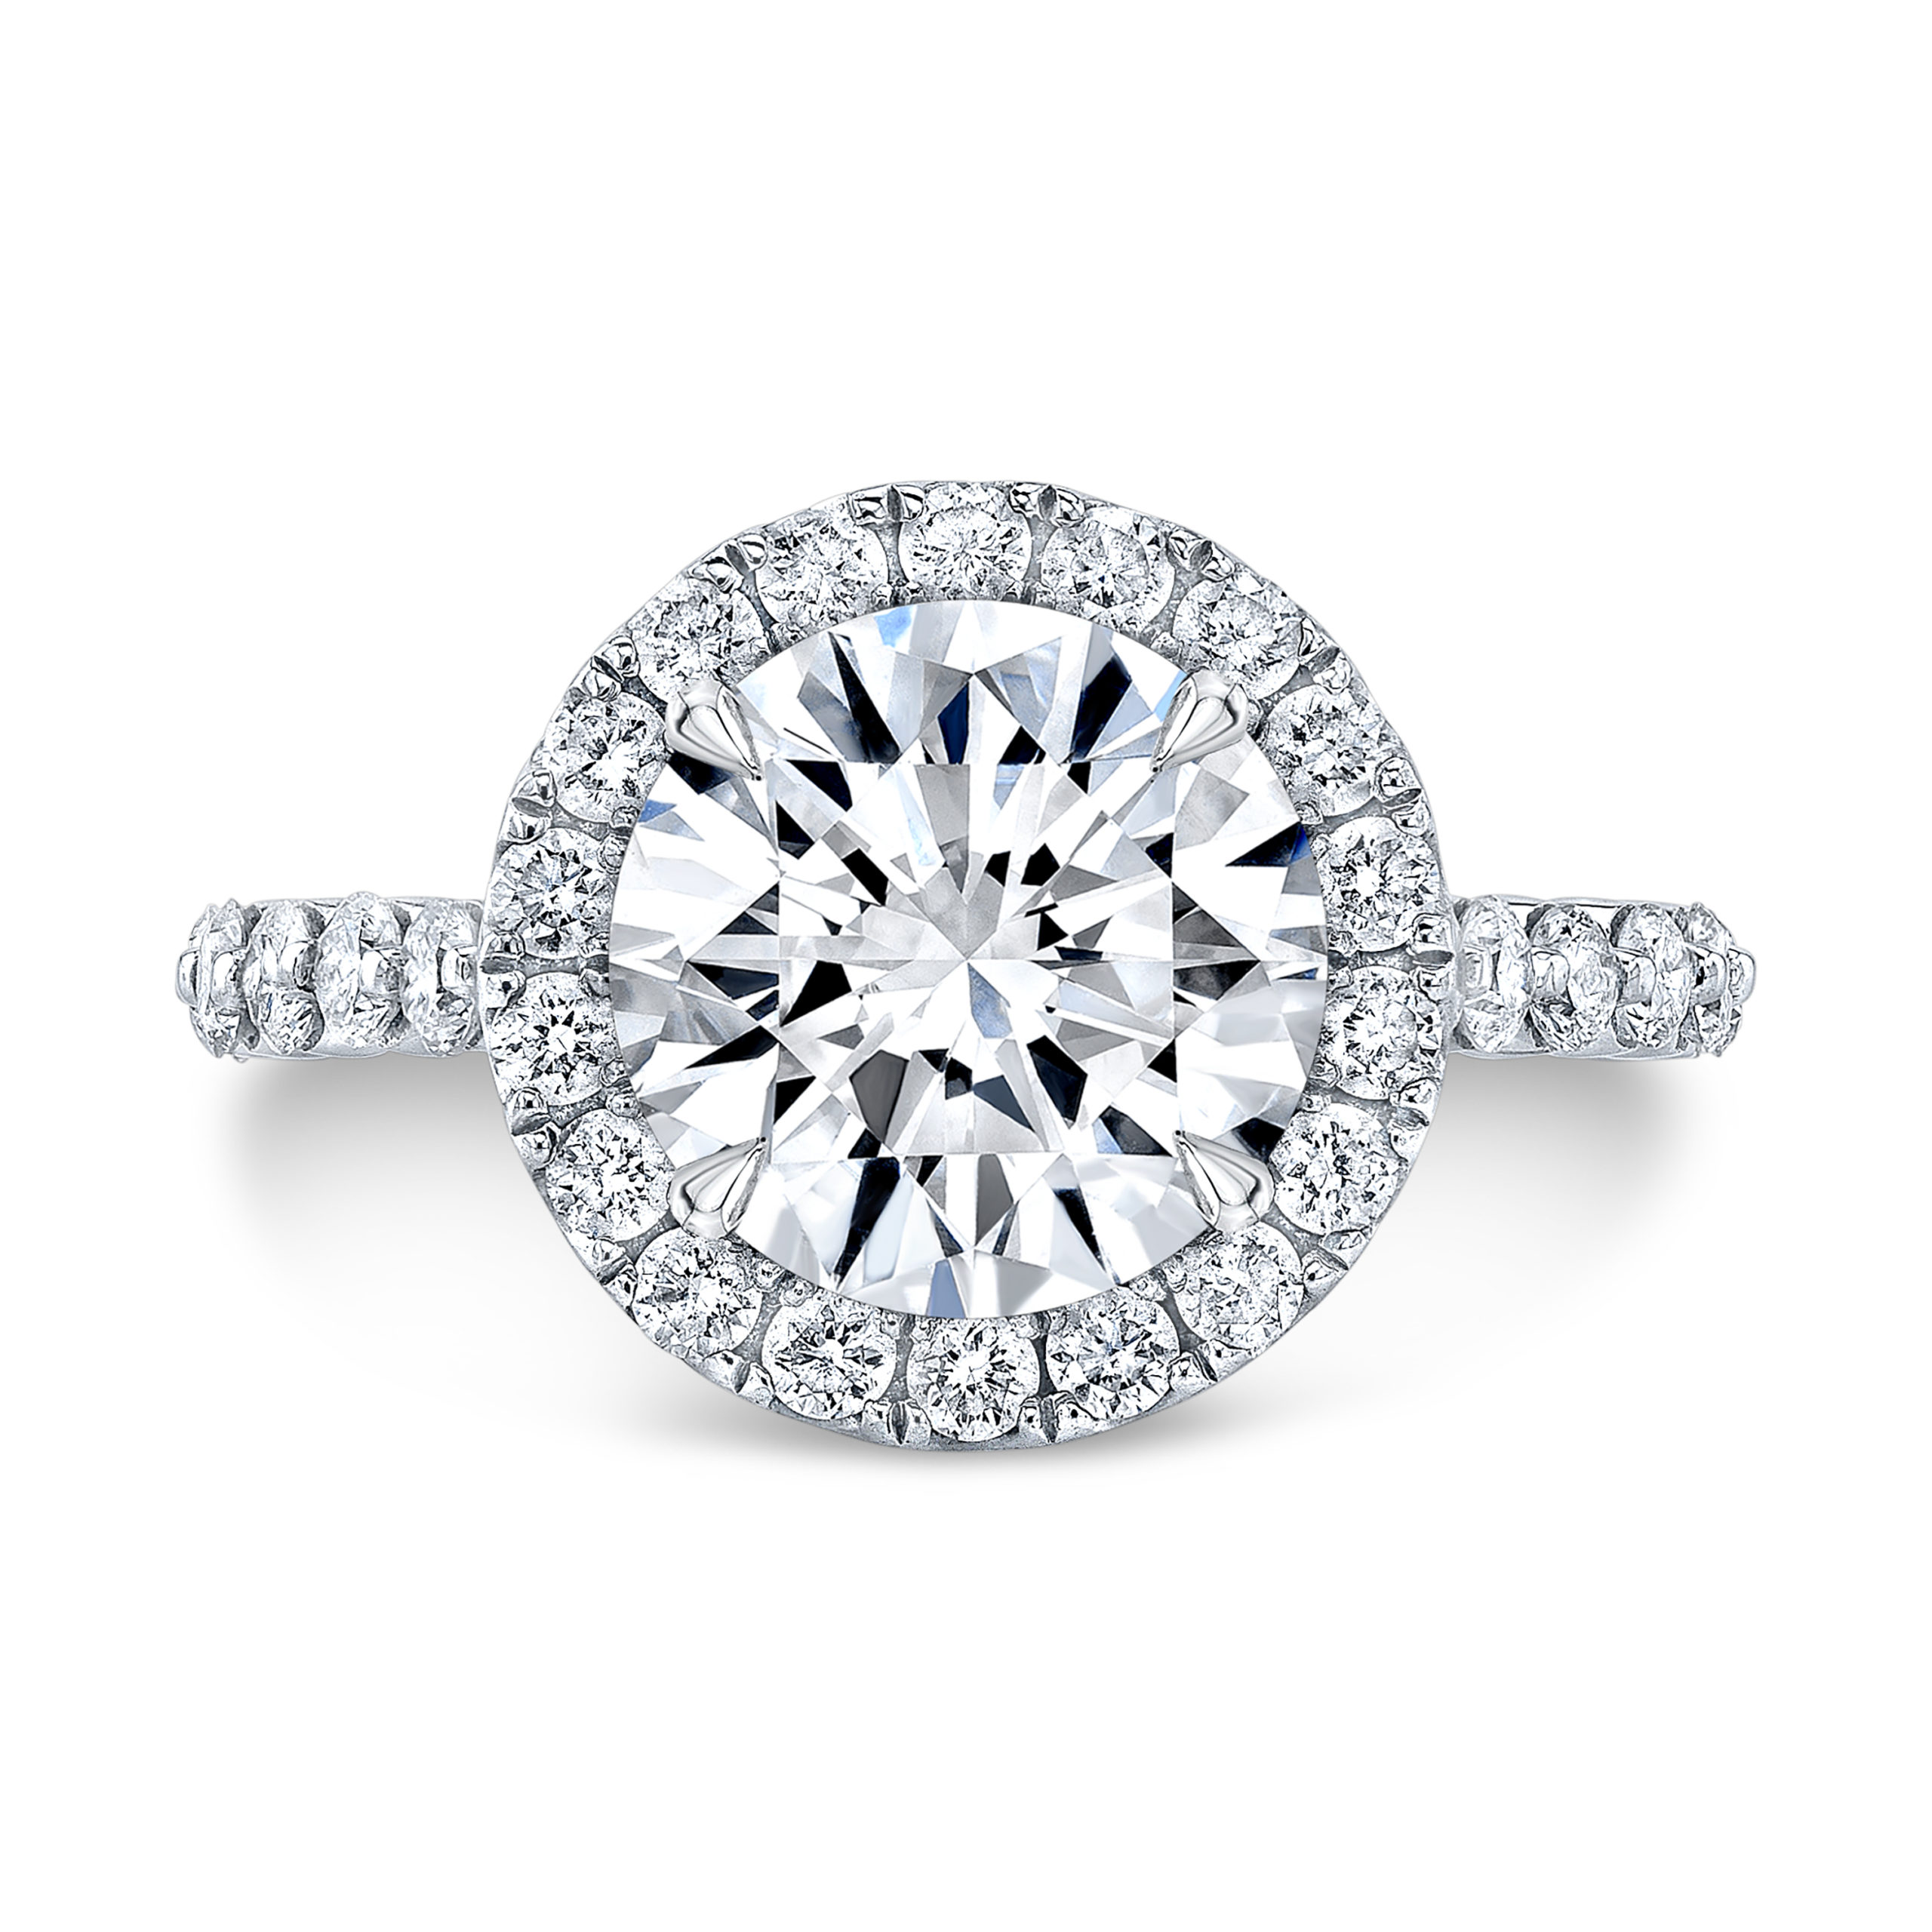 The Lexington Moissanite